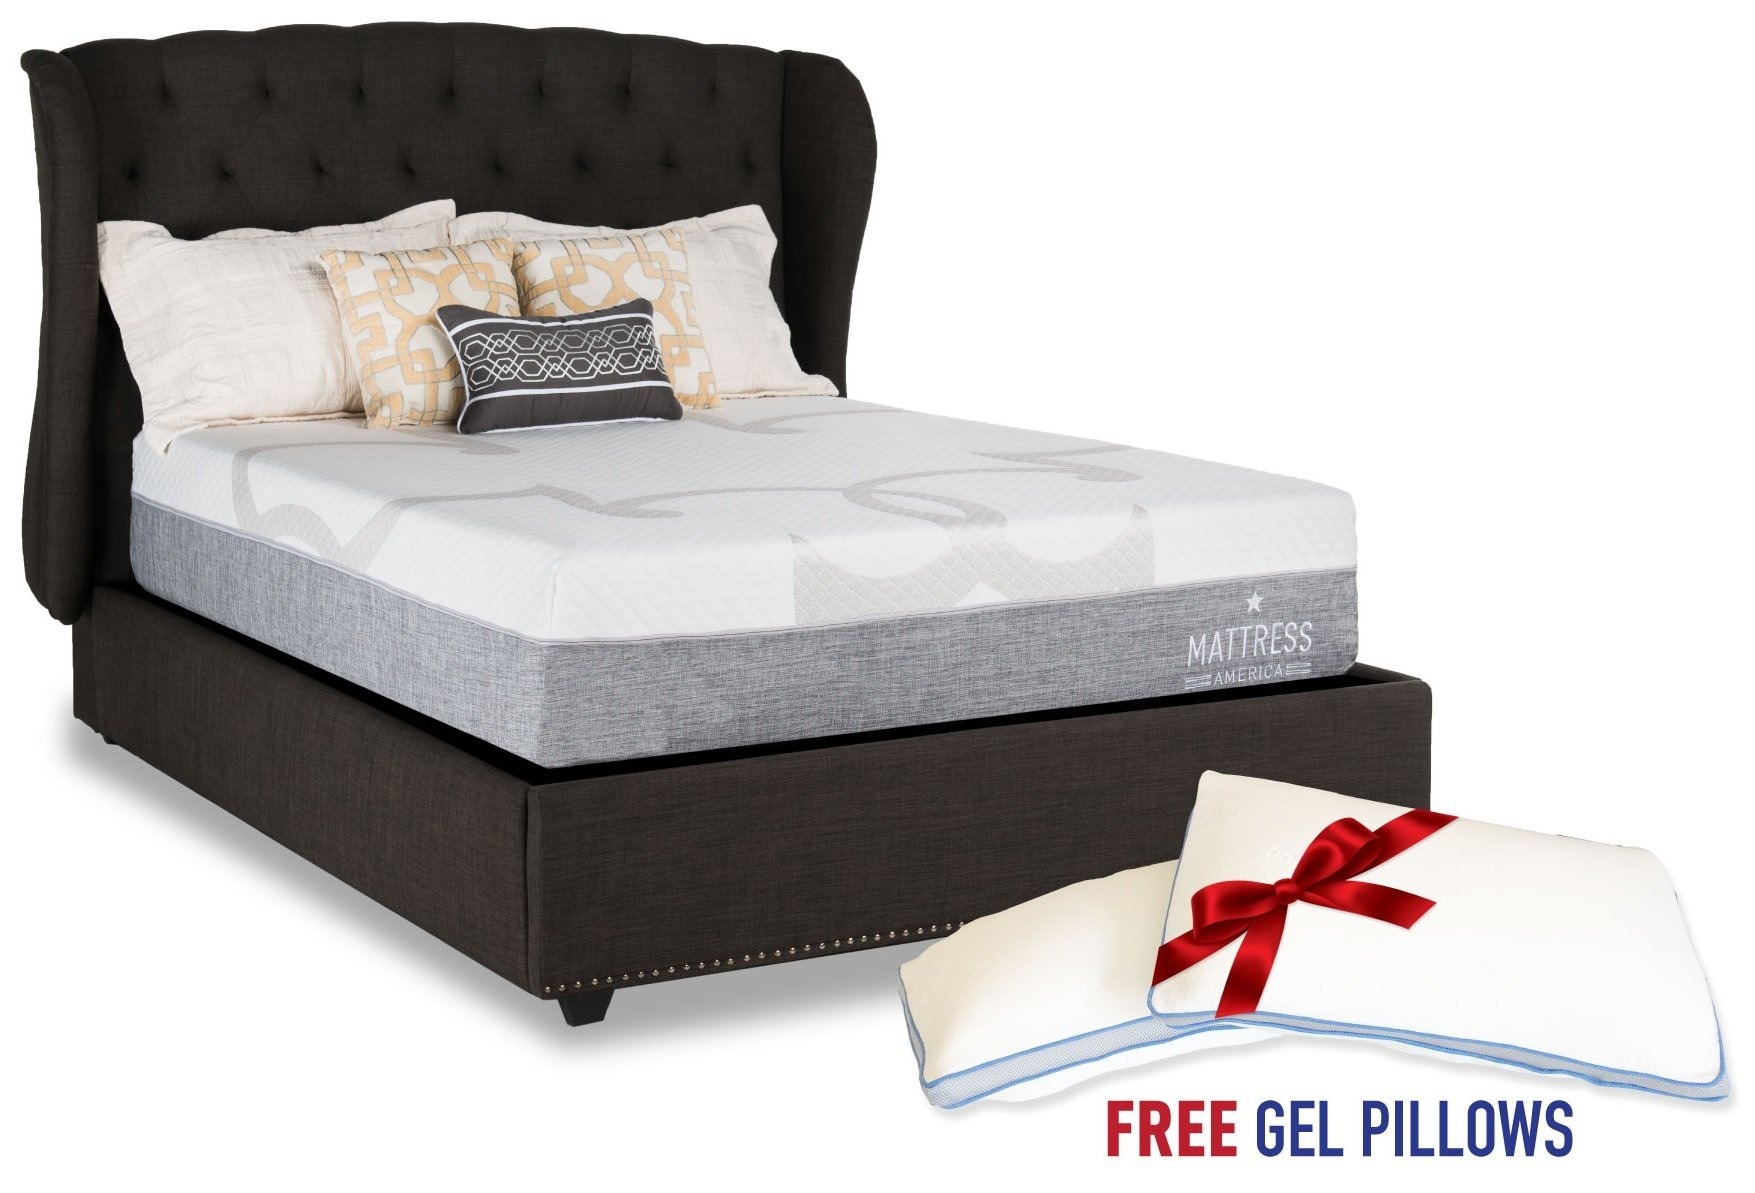 Mattress America Caress 10 Inch Gel Memory Foam Mattress With 1 Free Memory Foam Pillow (Full)